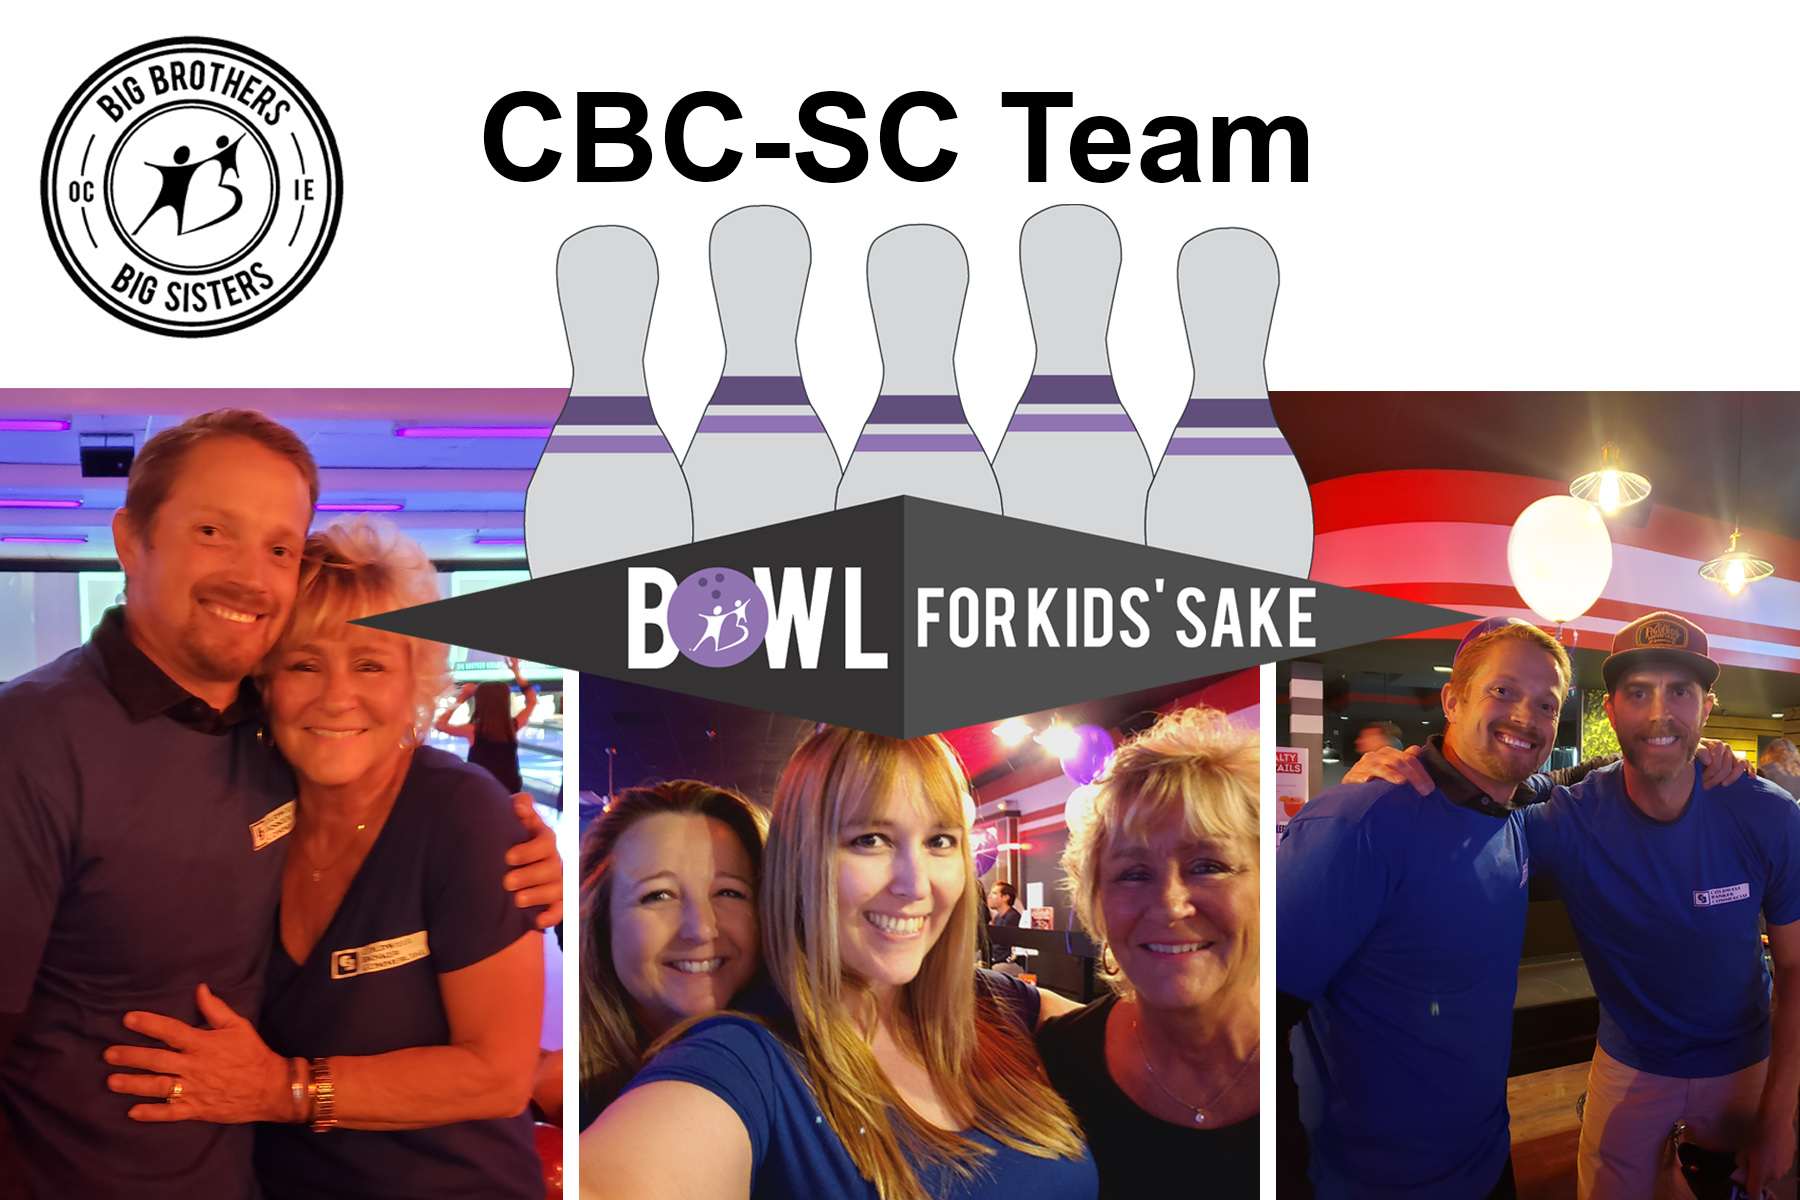 Coldwell Banker Commercial Participated in the Big Brothers Big Sisters Bowl for the Kids' Sake Benefit